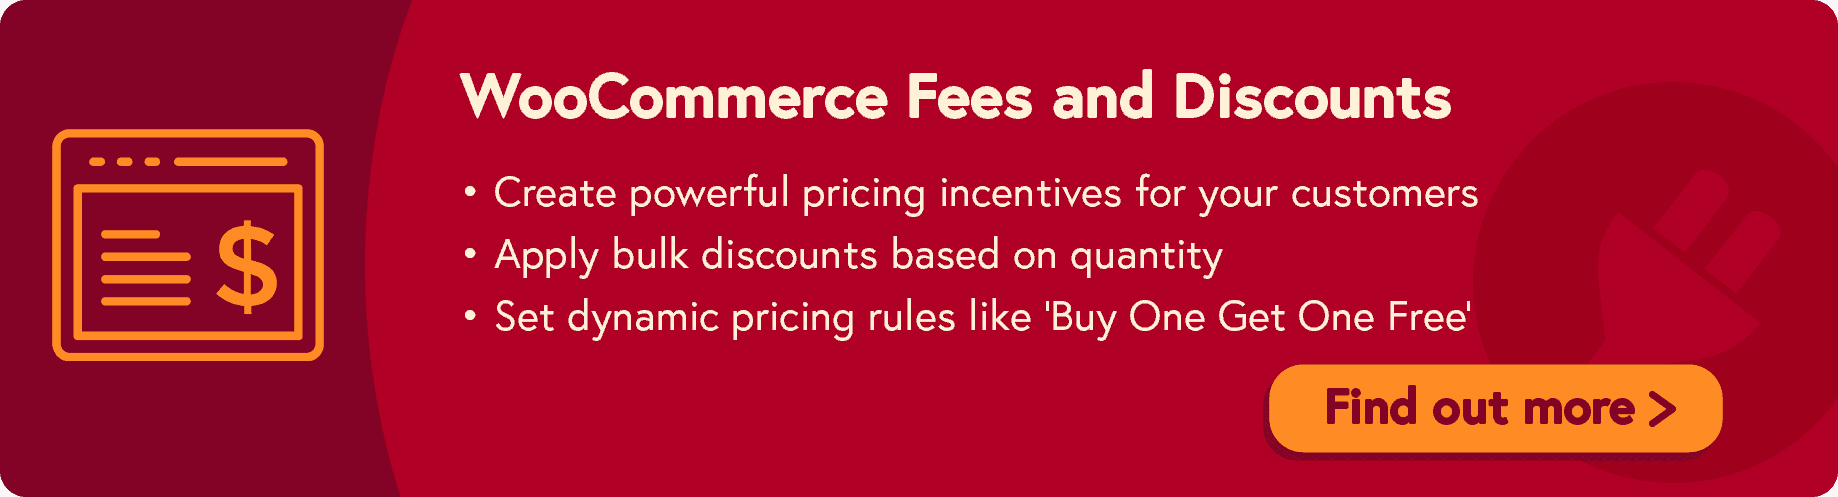 WooCommerce Fees and Discounts